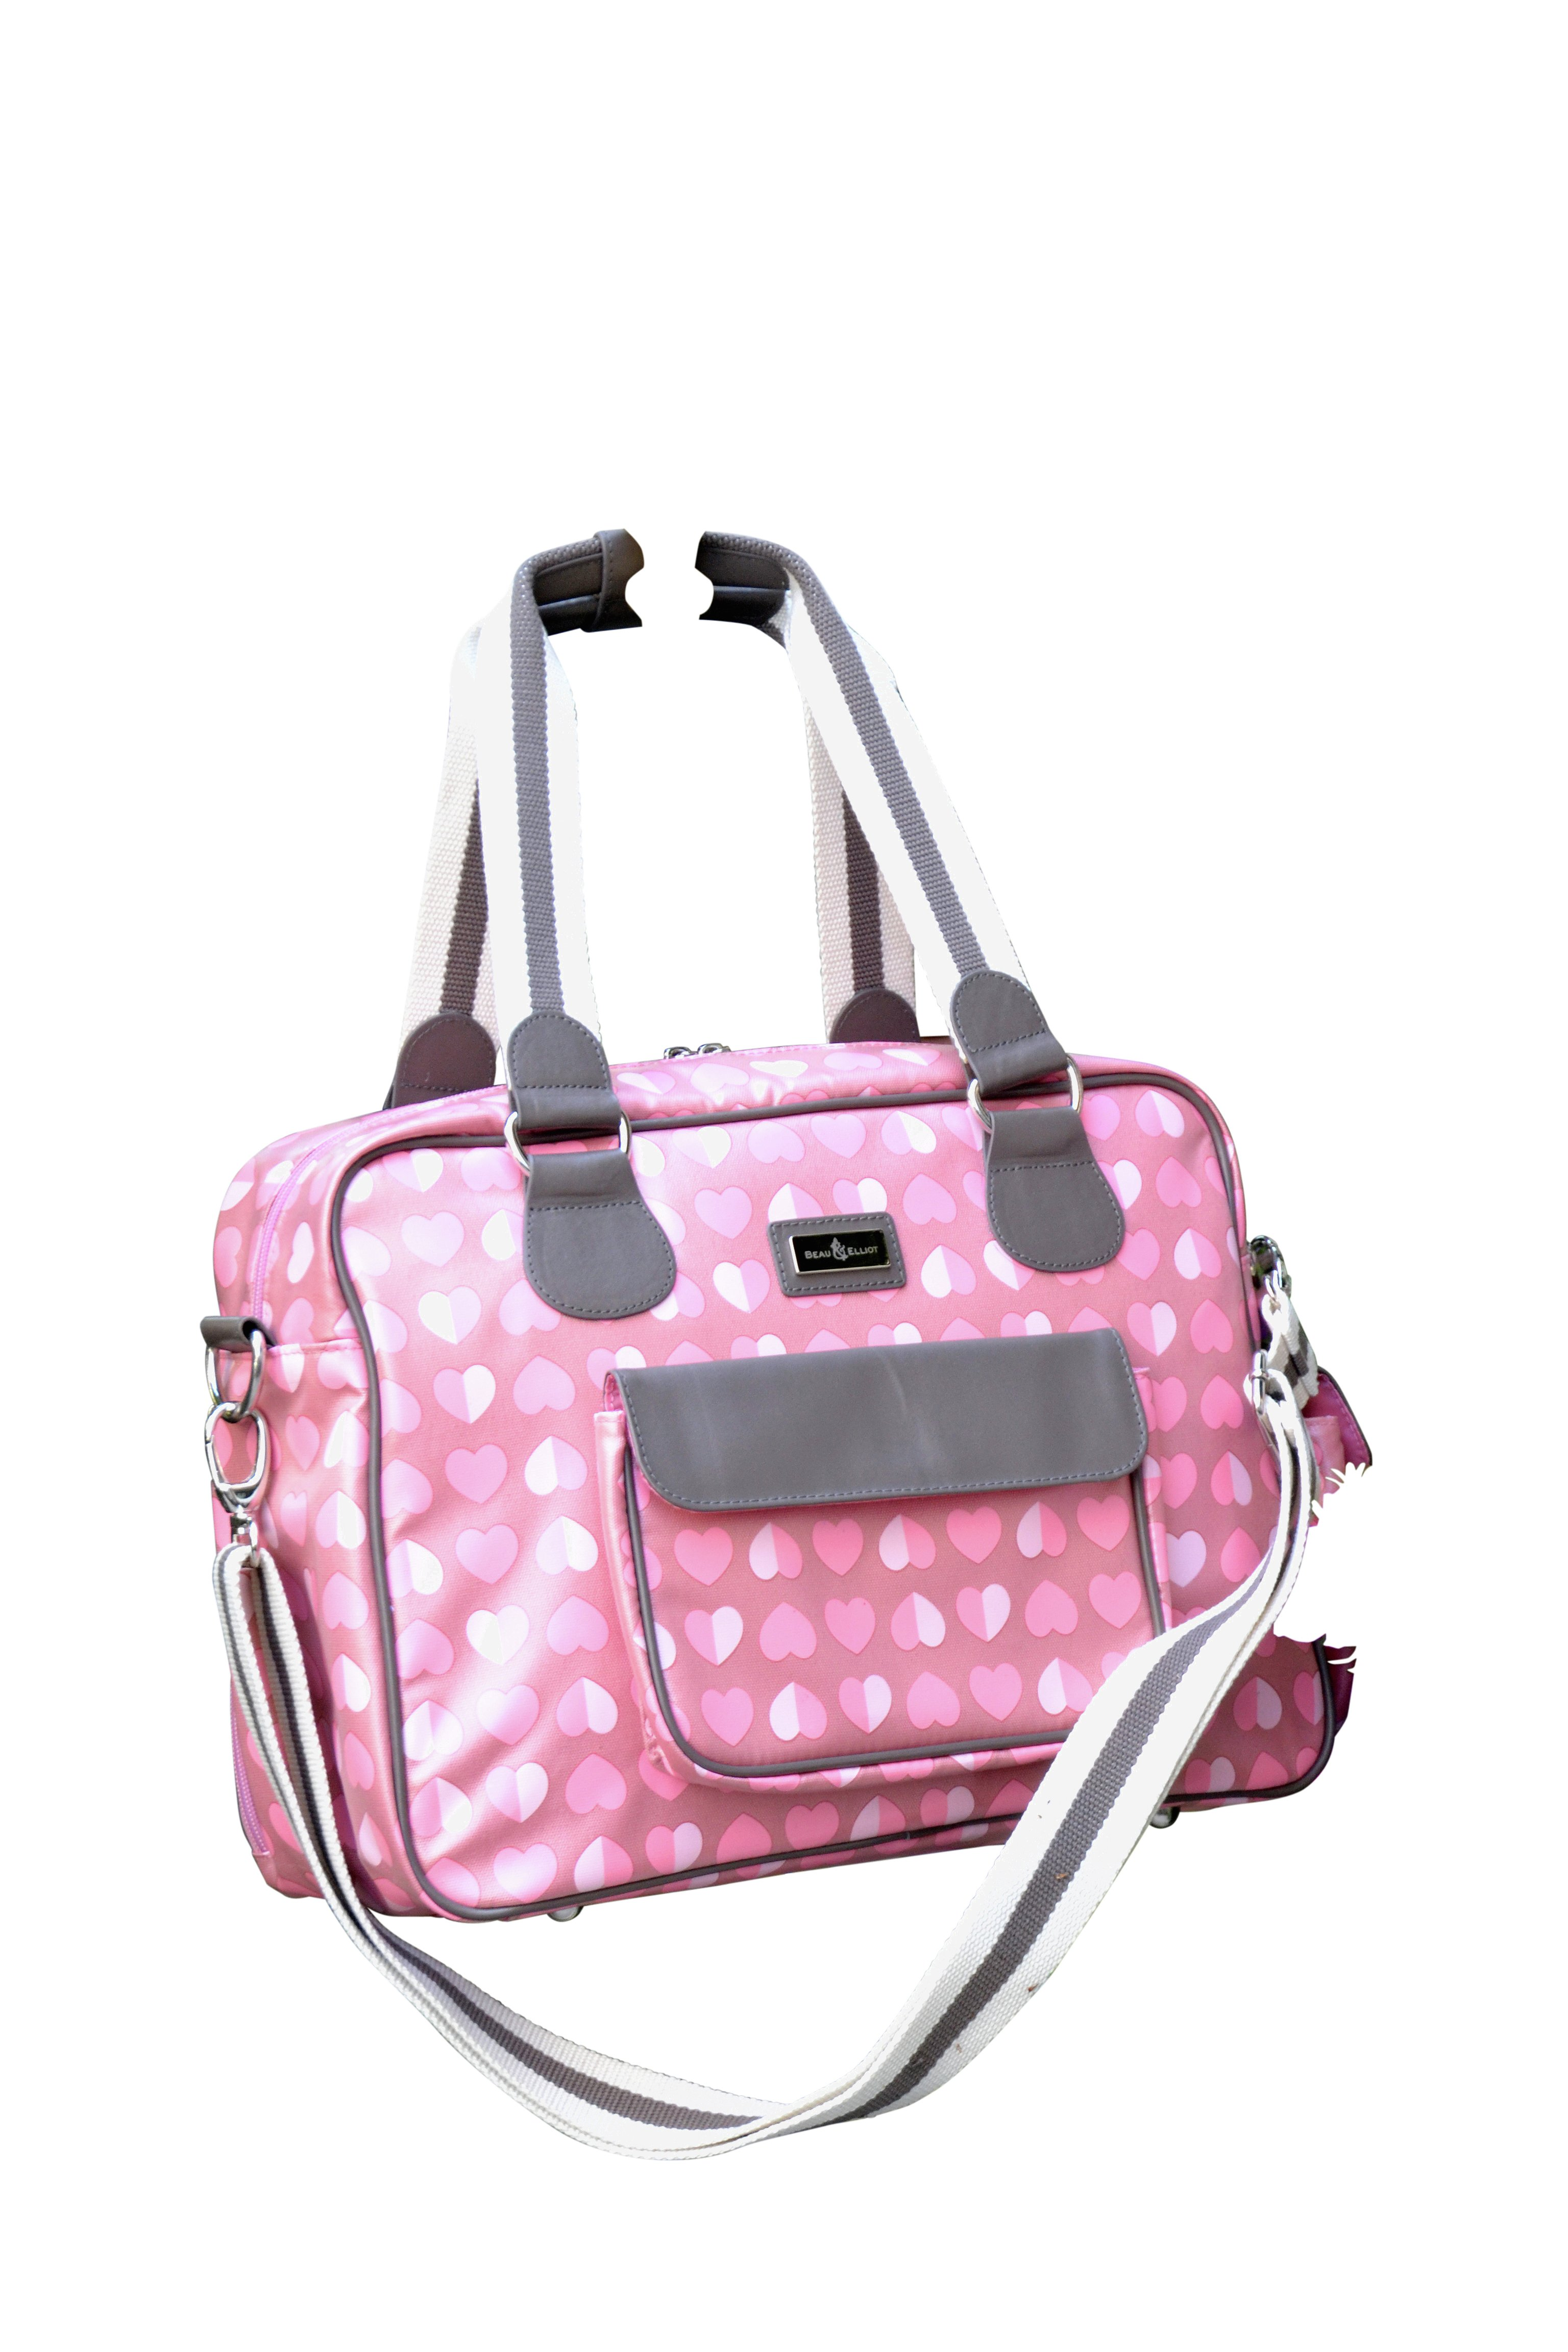 Image of Beau and Elliot Confetti Baby - Changing Bag - Pink